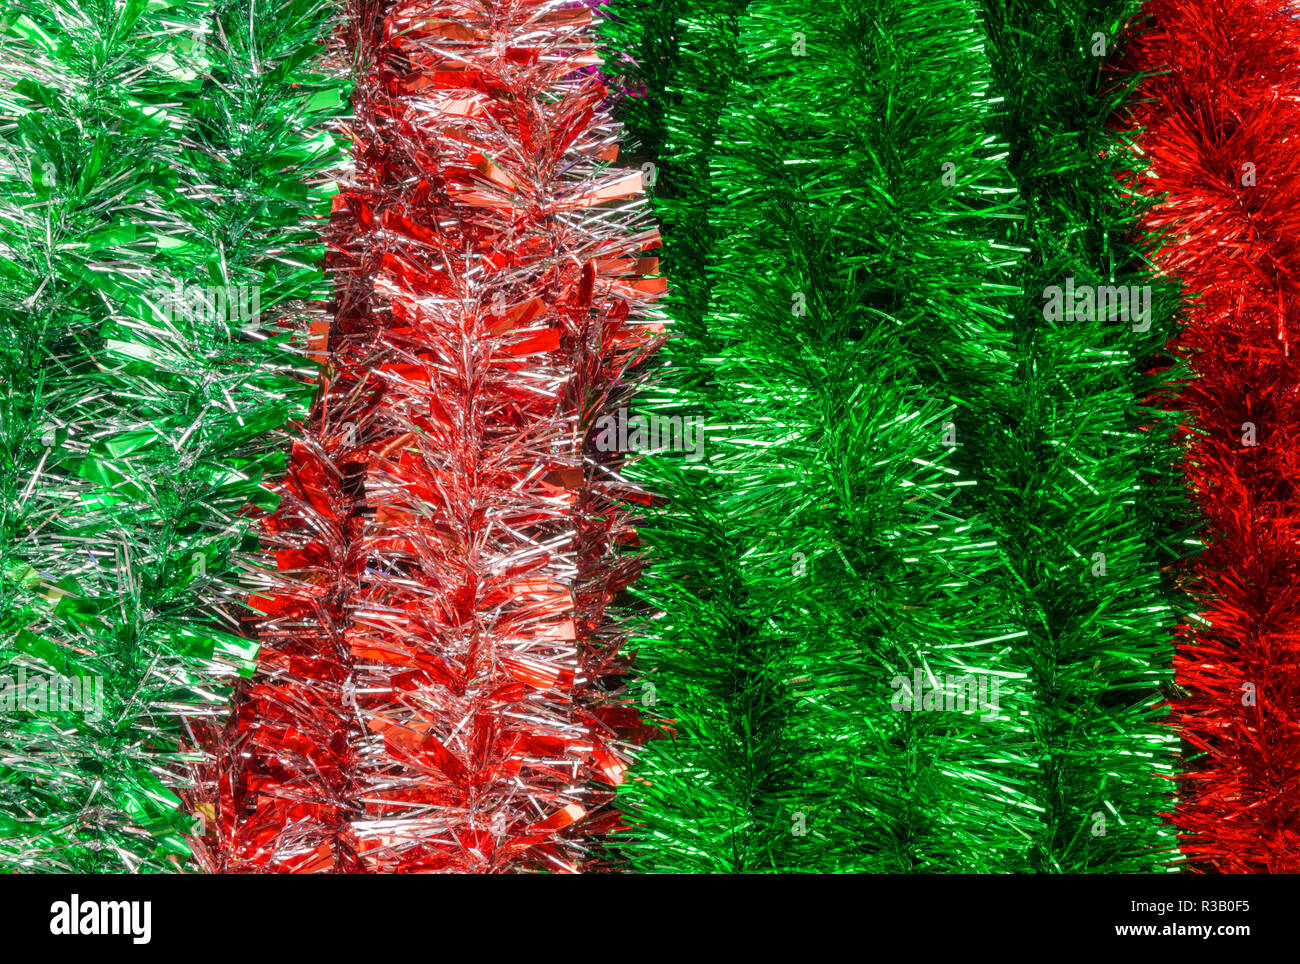 Red and green Christmas tinsel detail - Stock Image